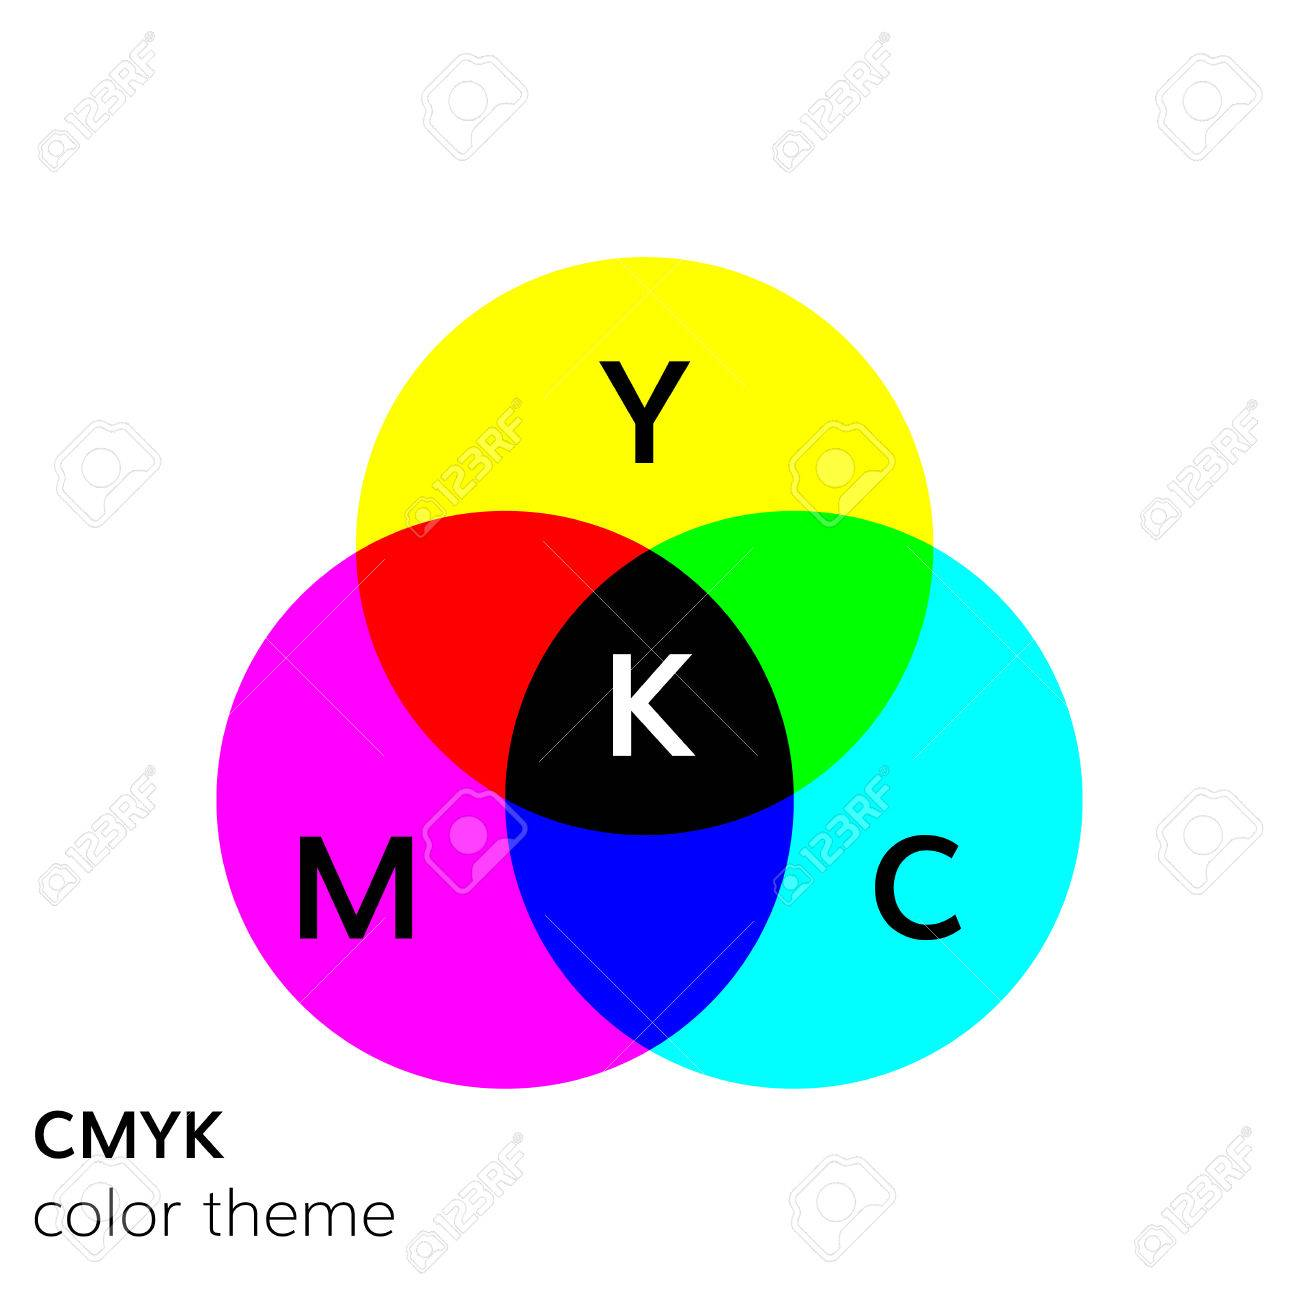 Rgb color mode wheel mixing illustrations overlay color royalty free rgb color mode wheel mixing illustrations overlay color stock vector 84224691 geenschuldenfo Image collections